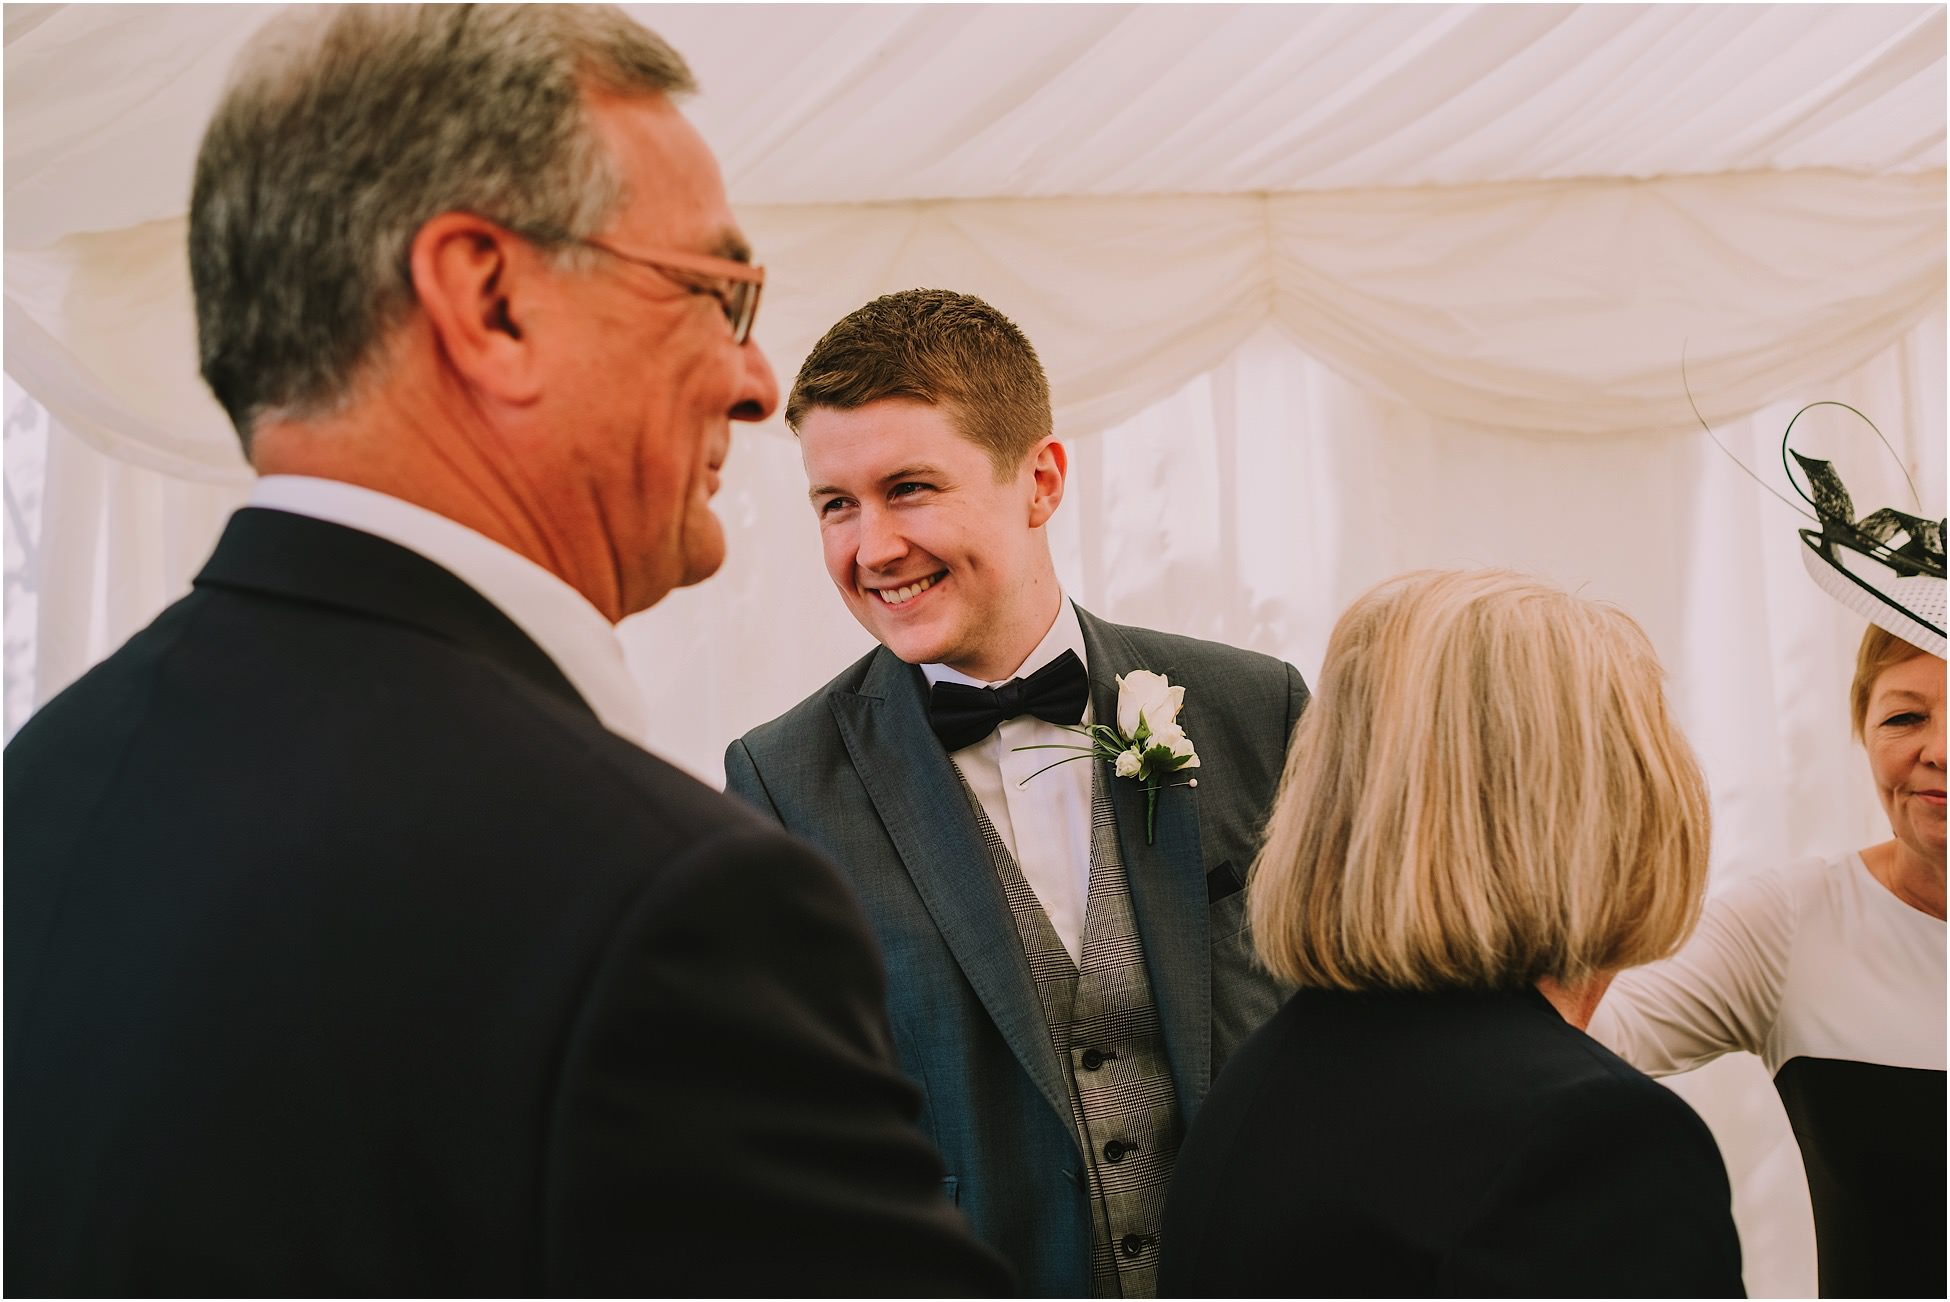 Groom speaking to the guests at a wedding reception